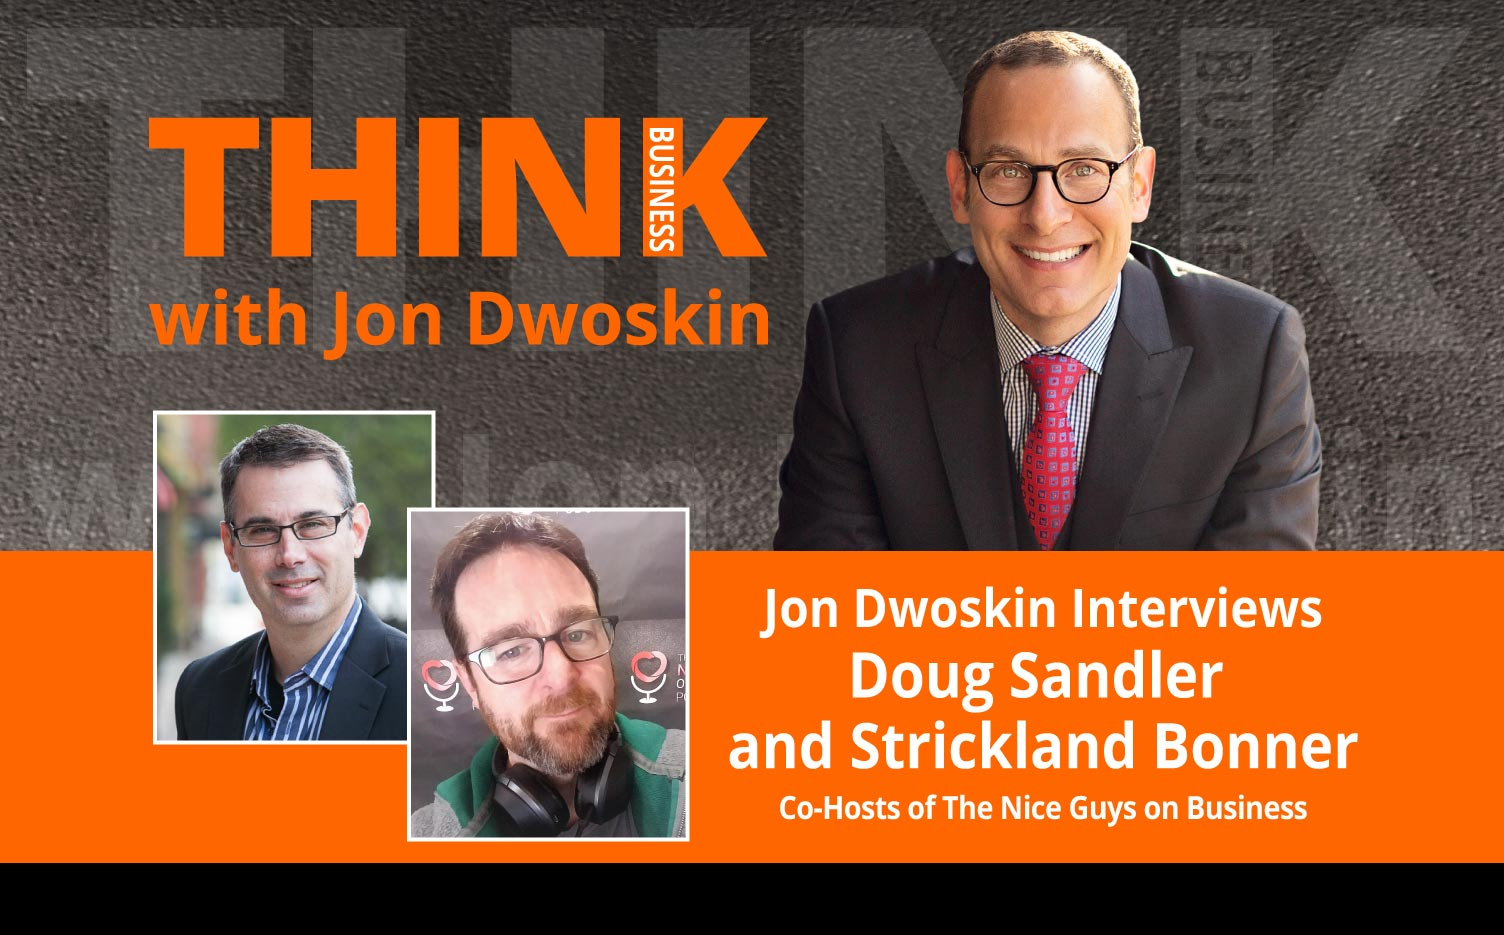 THINK Business Podcast: Jon Dwoskin Interviews Doug Sandler and Strickland Bonner, Co-Hosts of The Nice Guys on Business